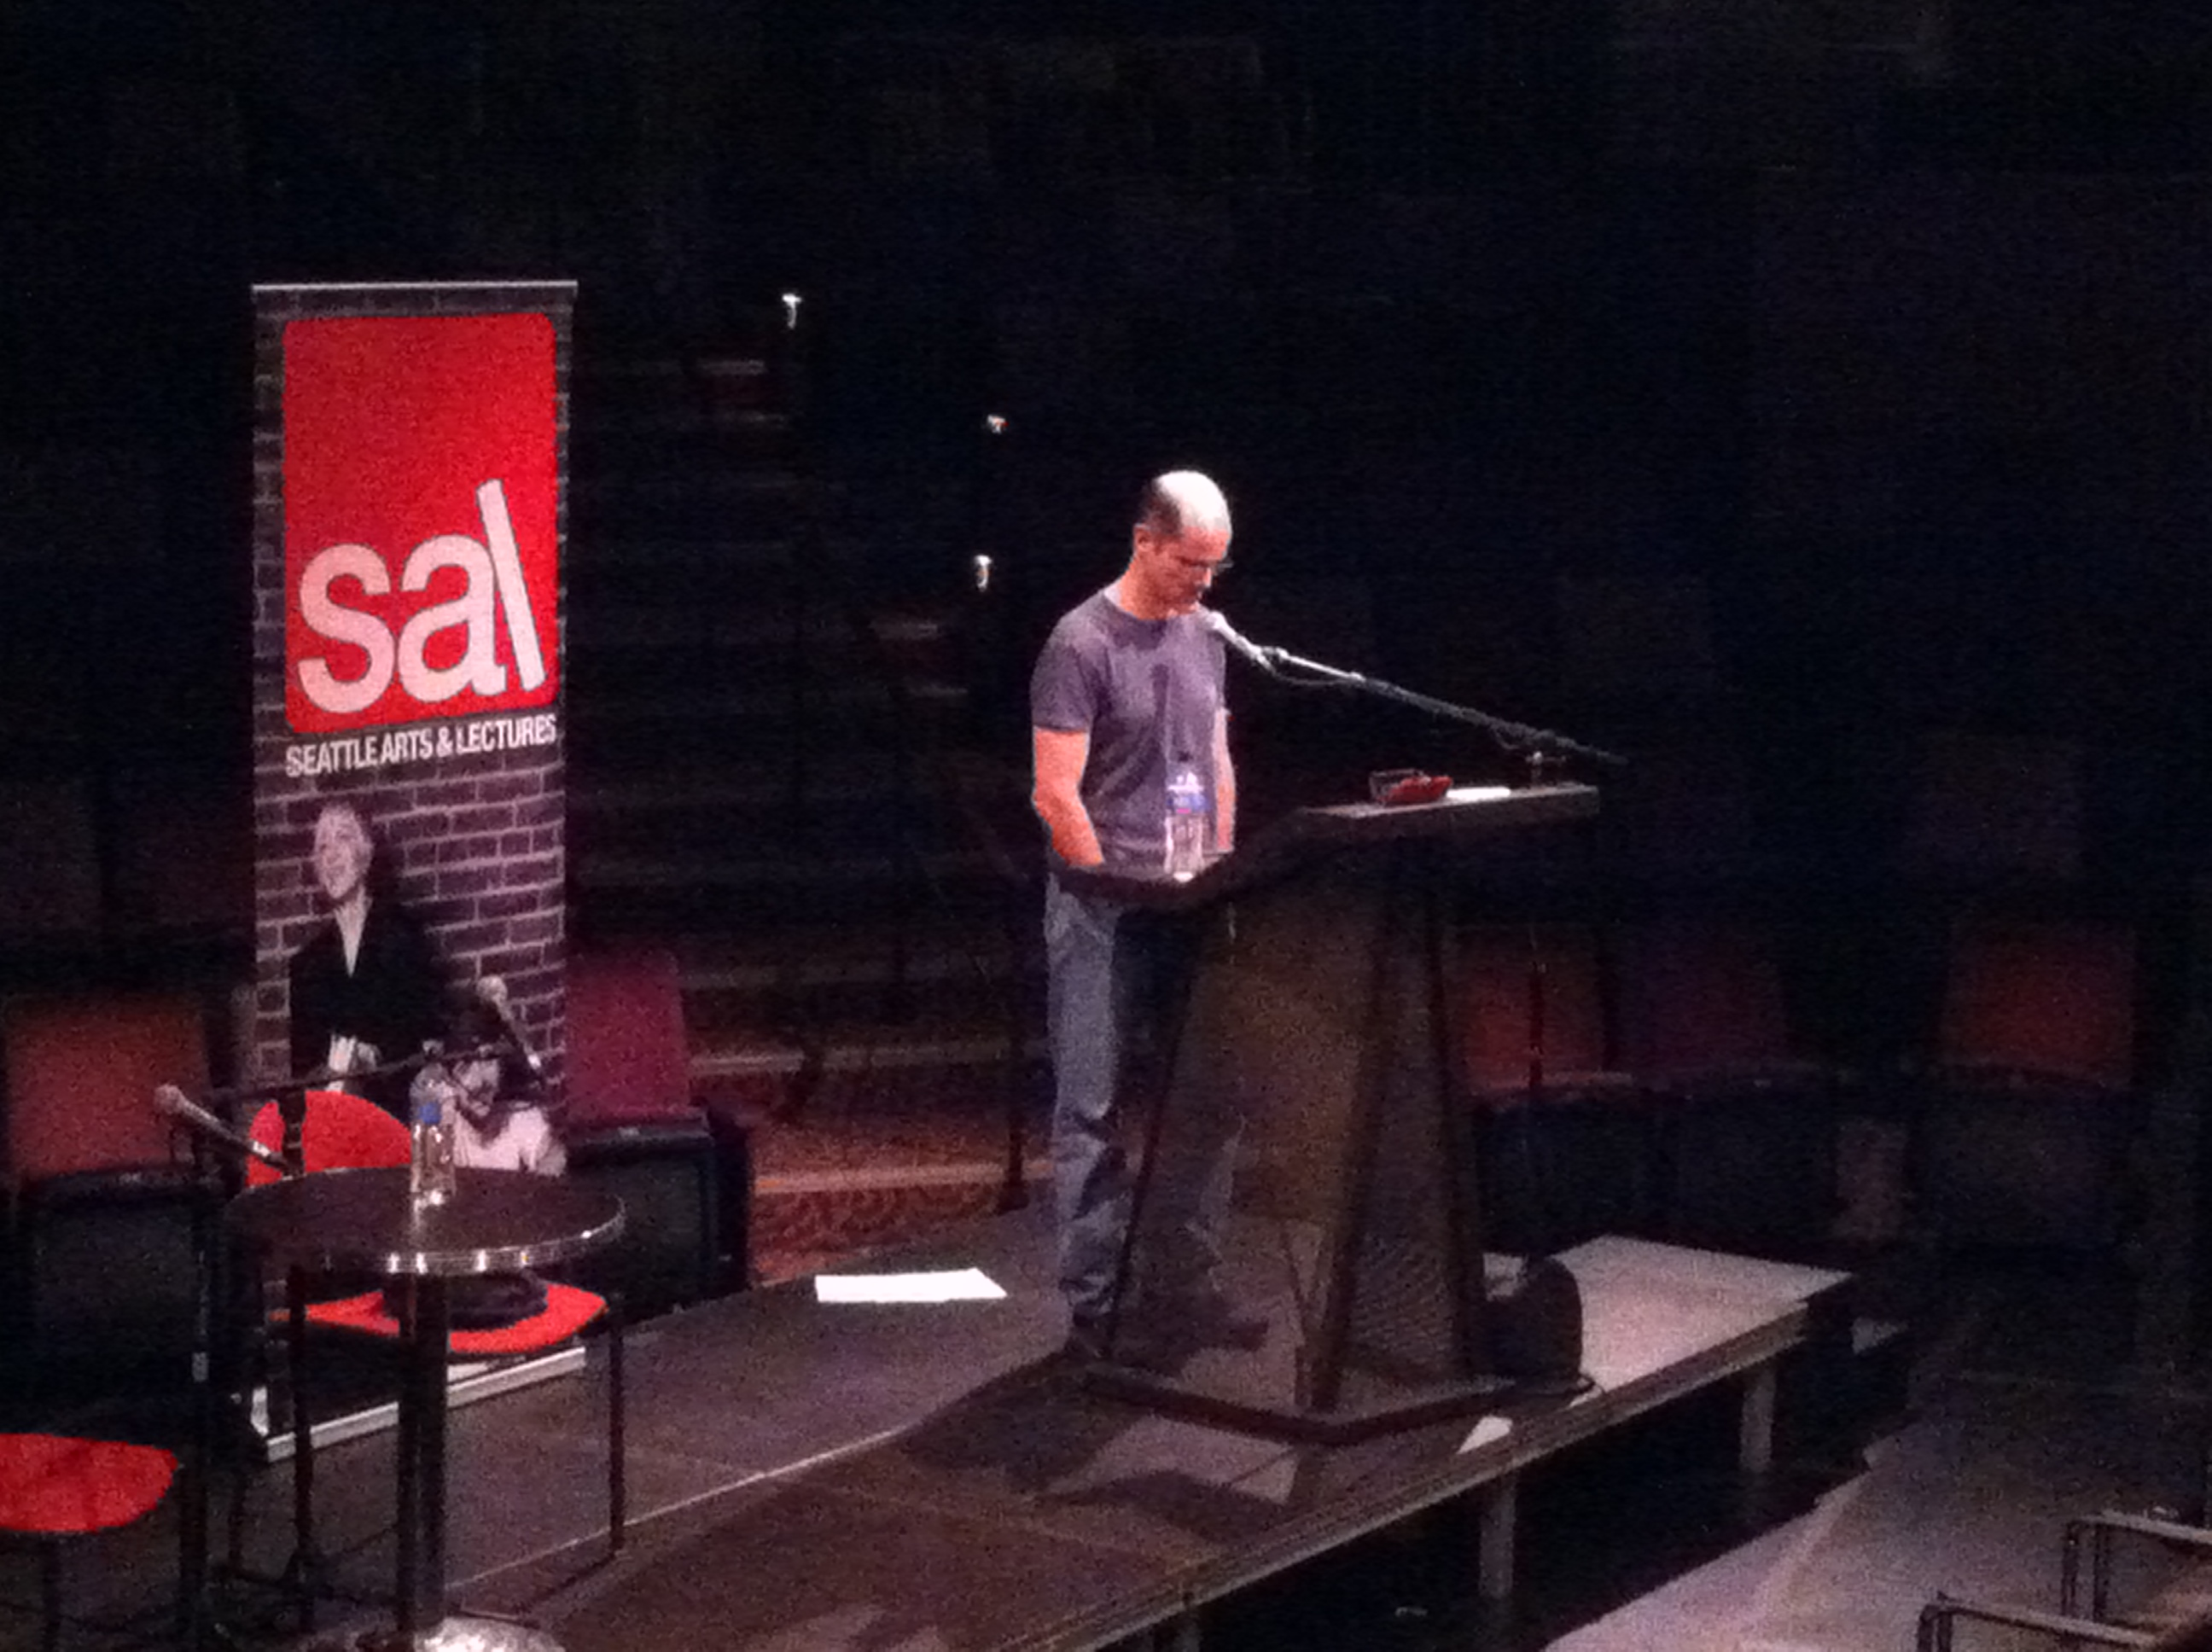 Bob Hicok reads for Seattle Arts & Lectures on February 13, 2014